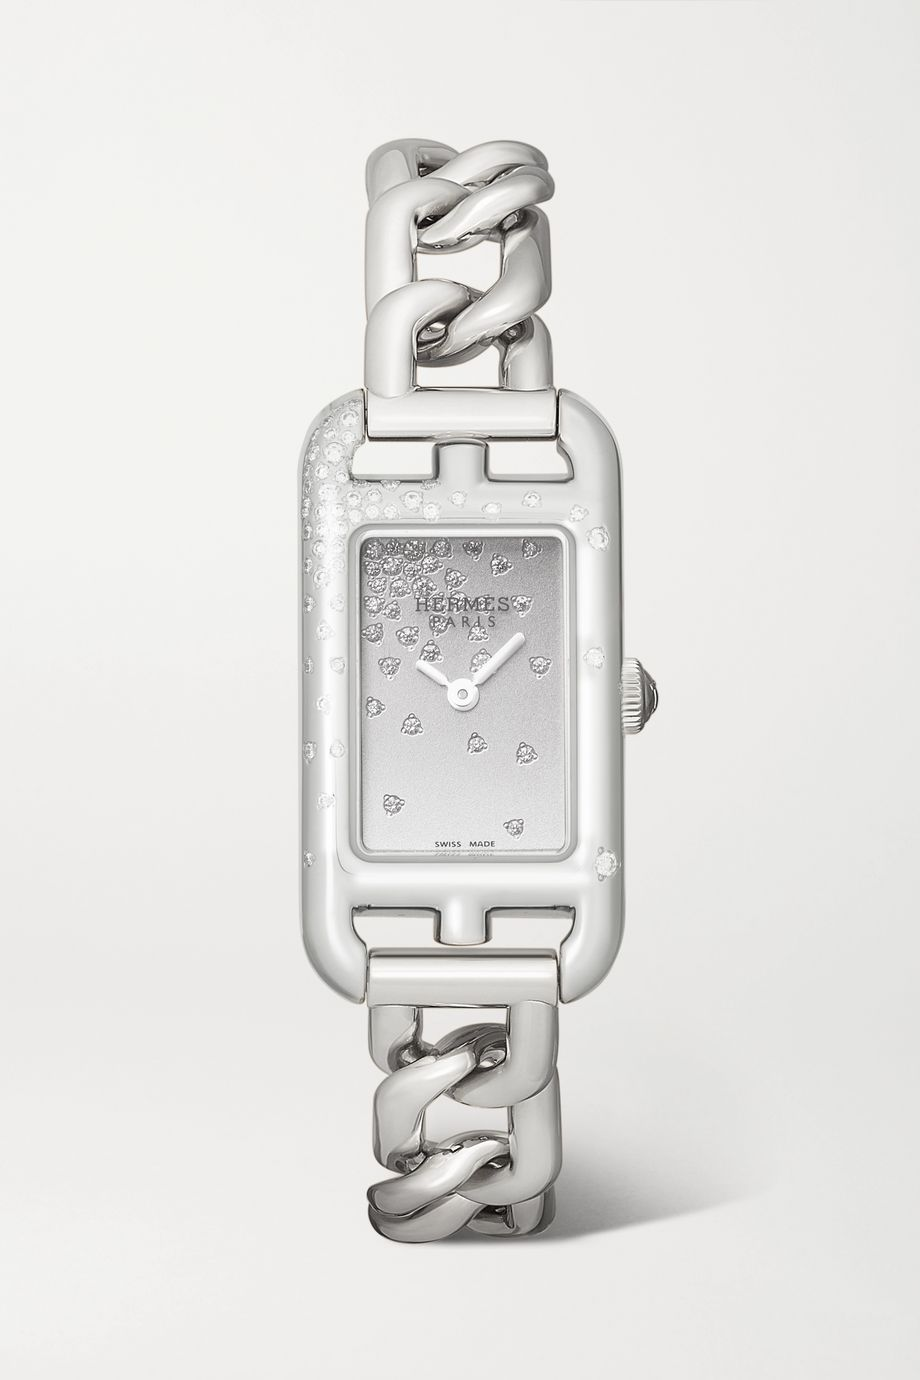 Hermès Timepieces Nantucket 17mm very small stainless steel and diamond watch